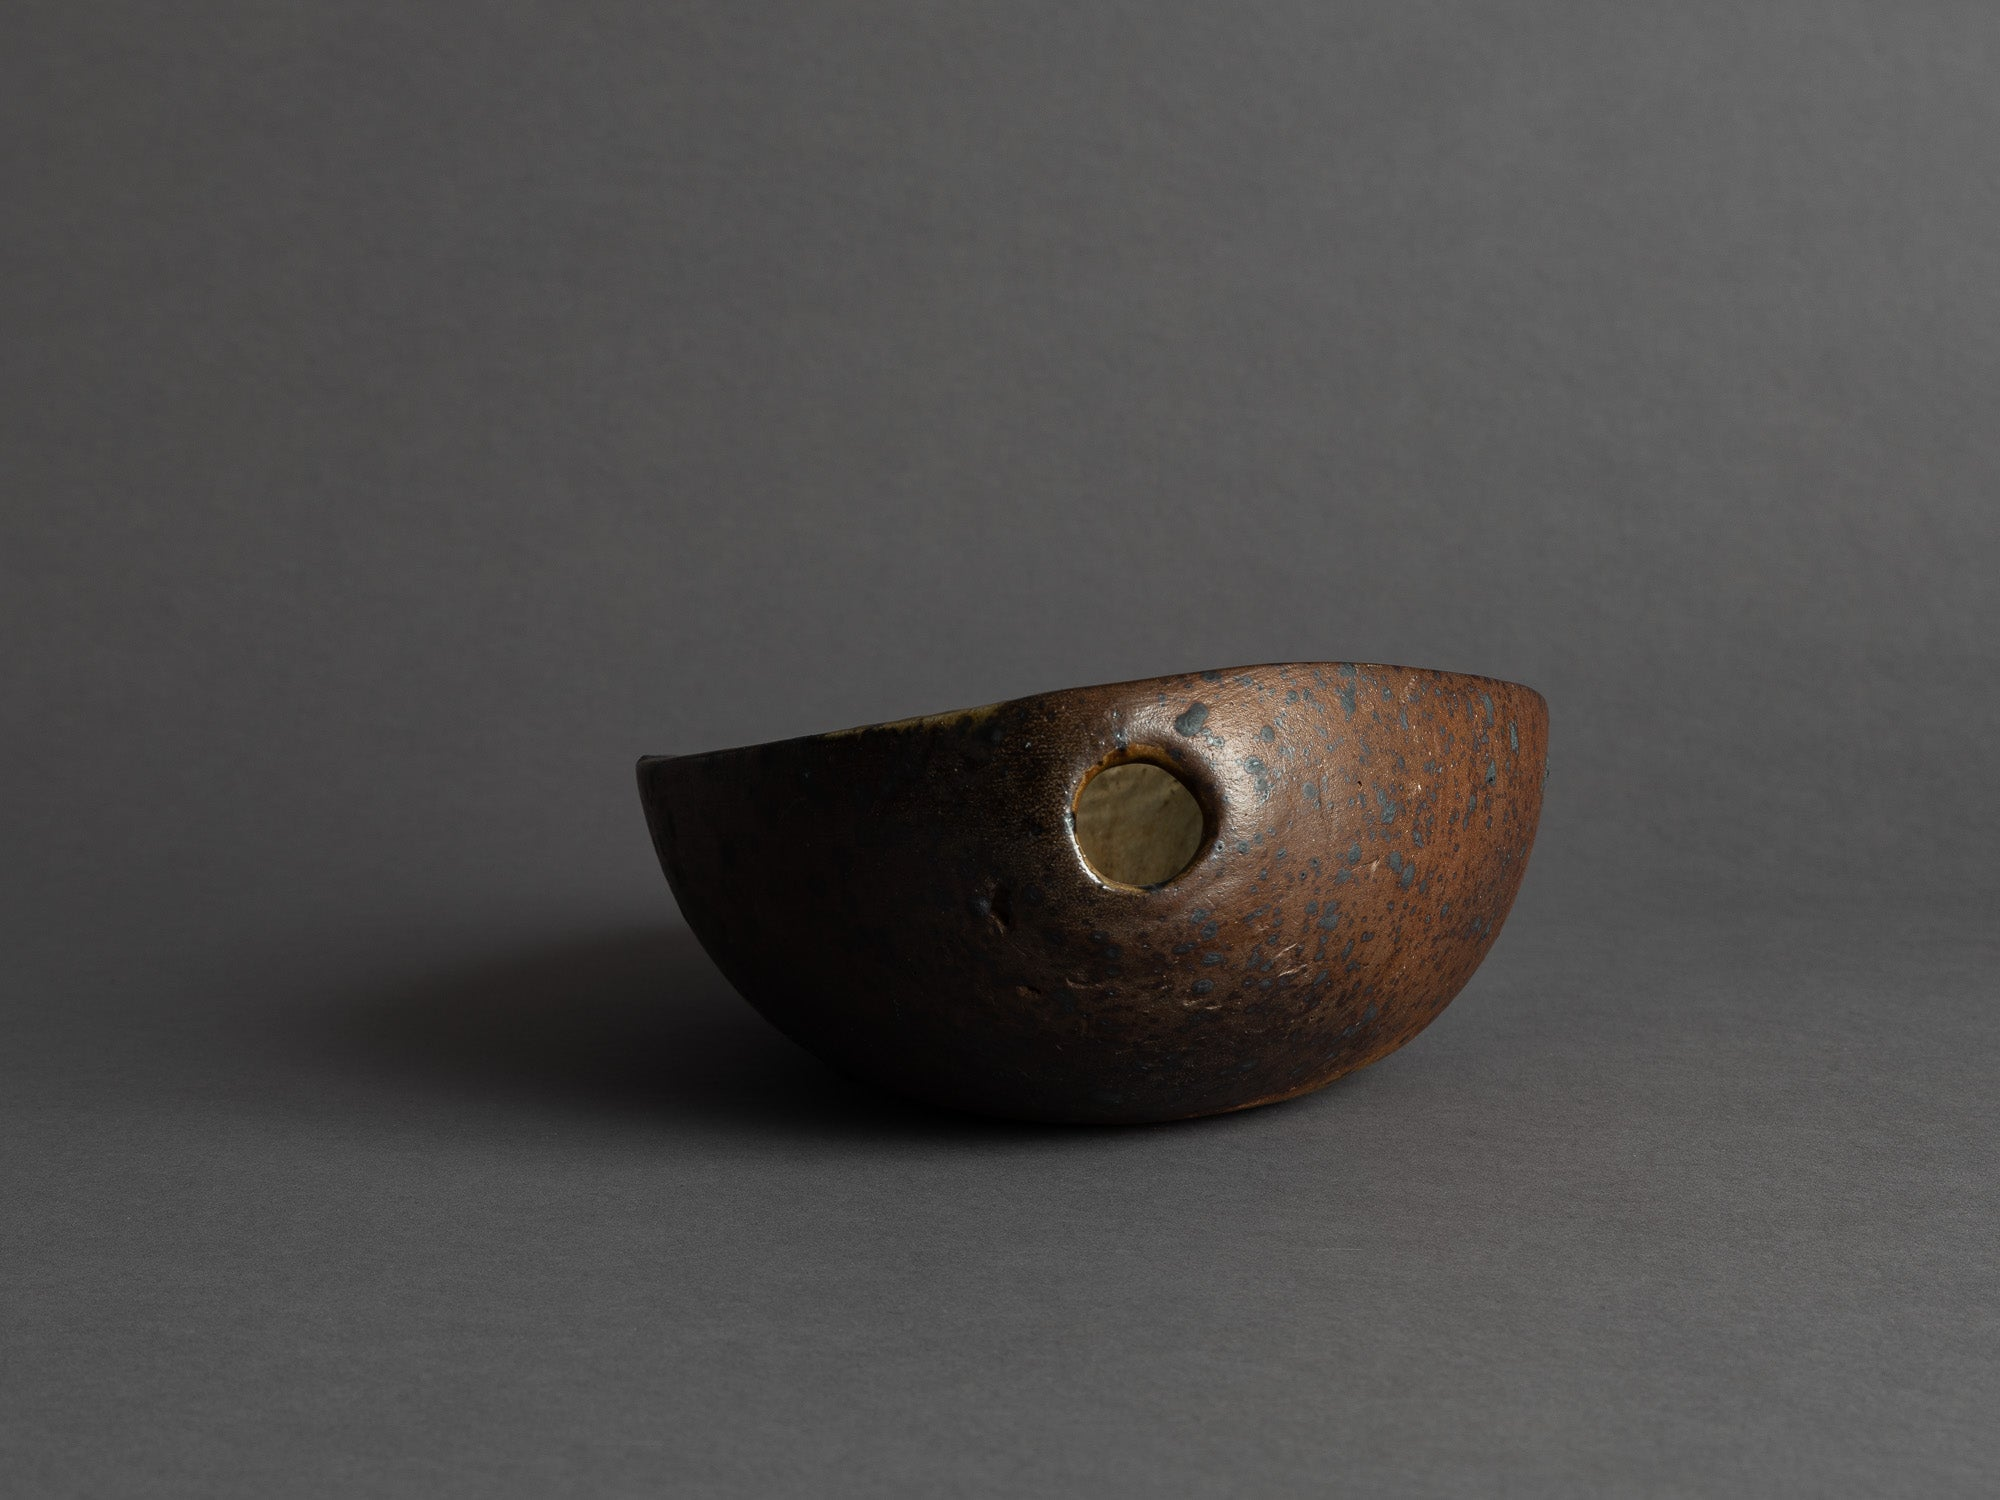 Rare coupe de forme libre de Jeanne et Norbert Pierlot à Ratilly, France (vers 1955)..Large free form bowl by Jeanne et Norbert Pierlot in Ratilly, France (circa 1955)